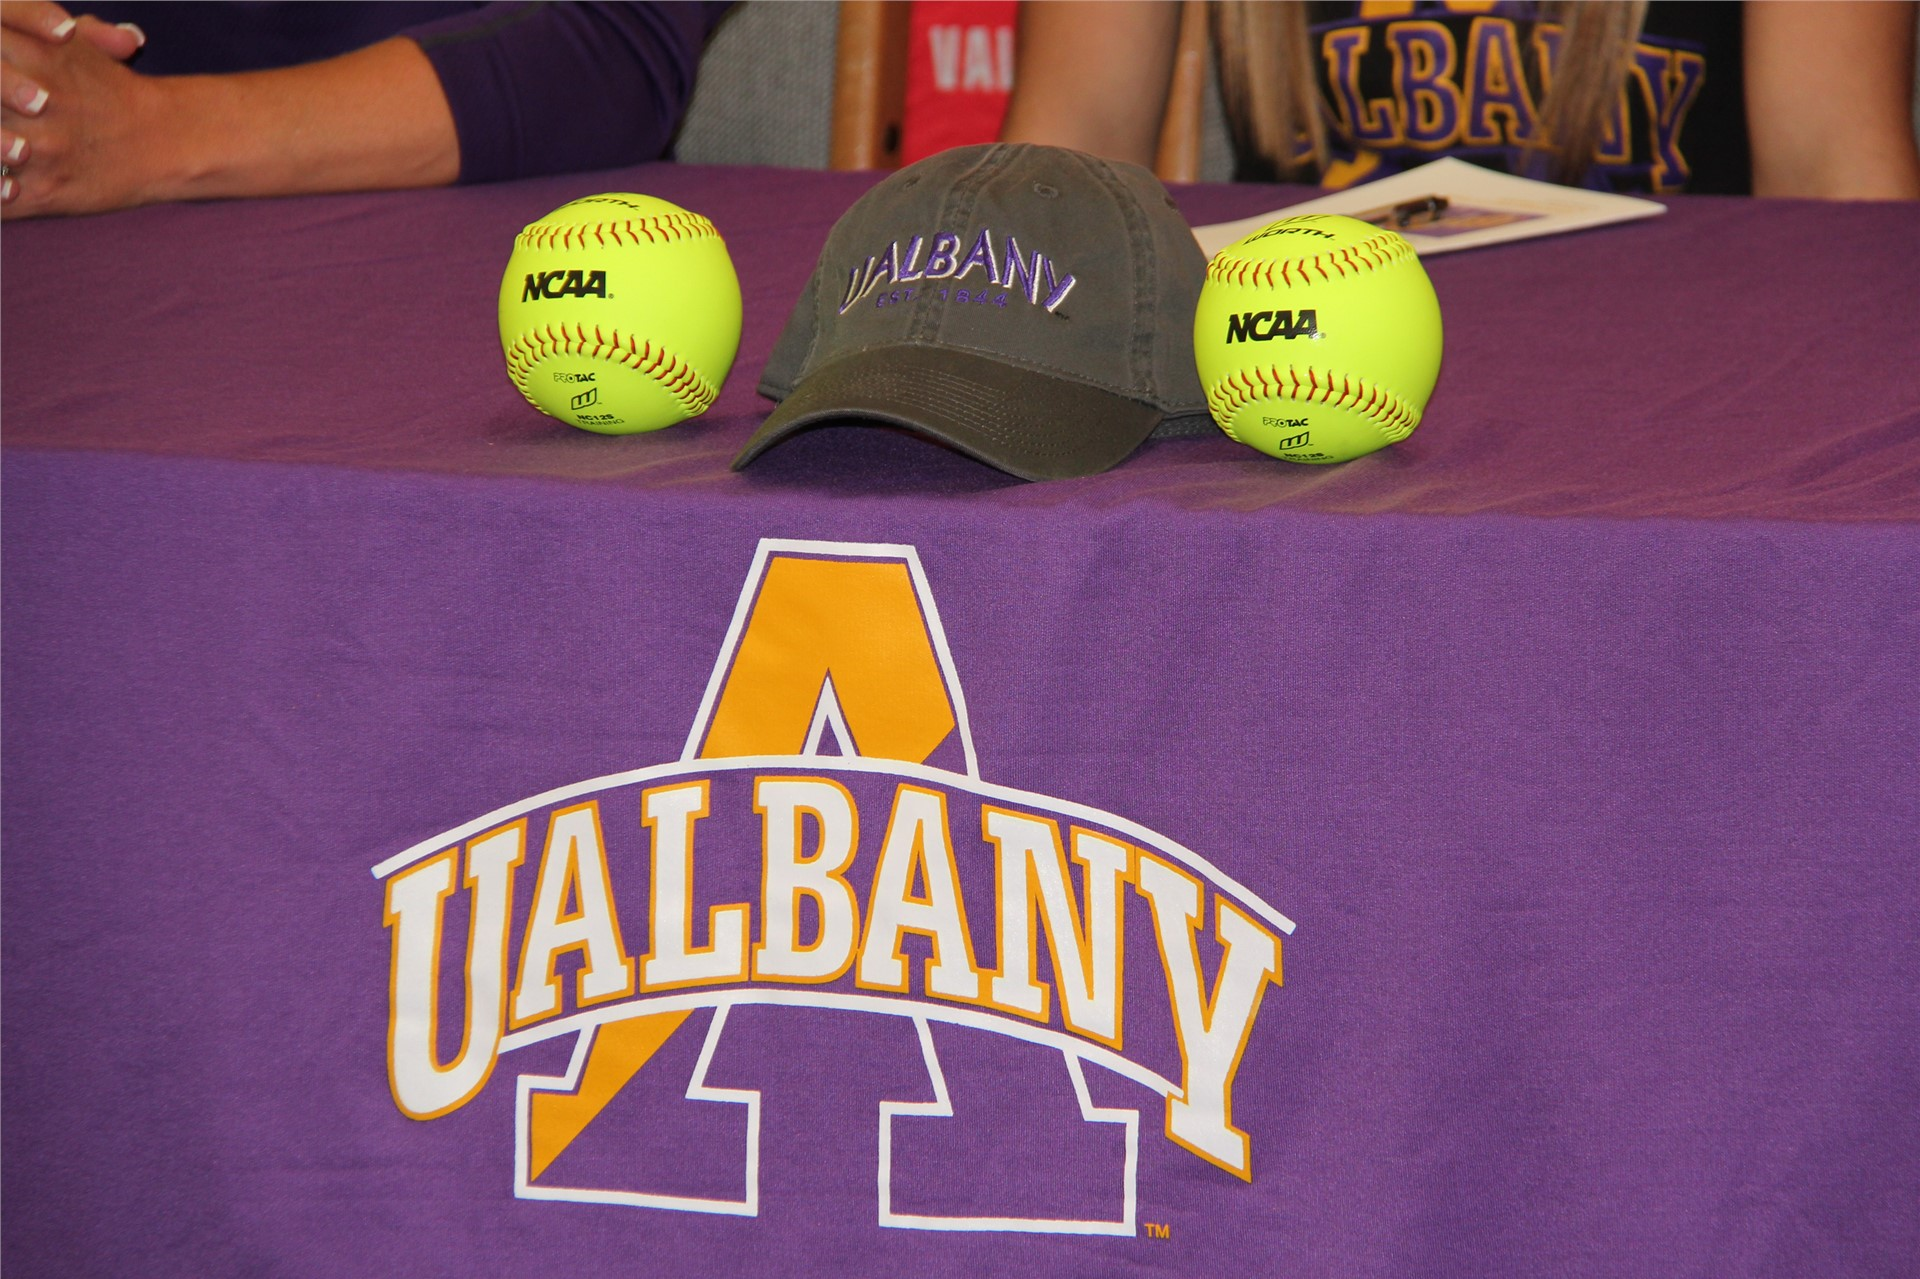 table says u albany with hat and two softballs on it